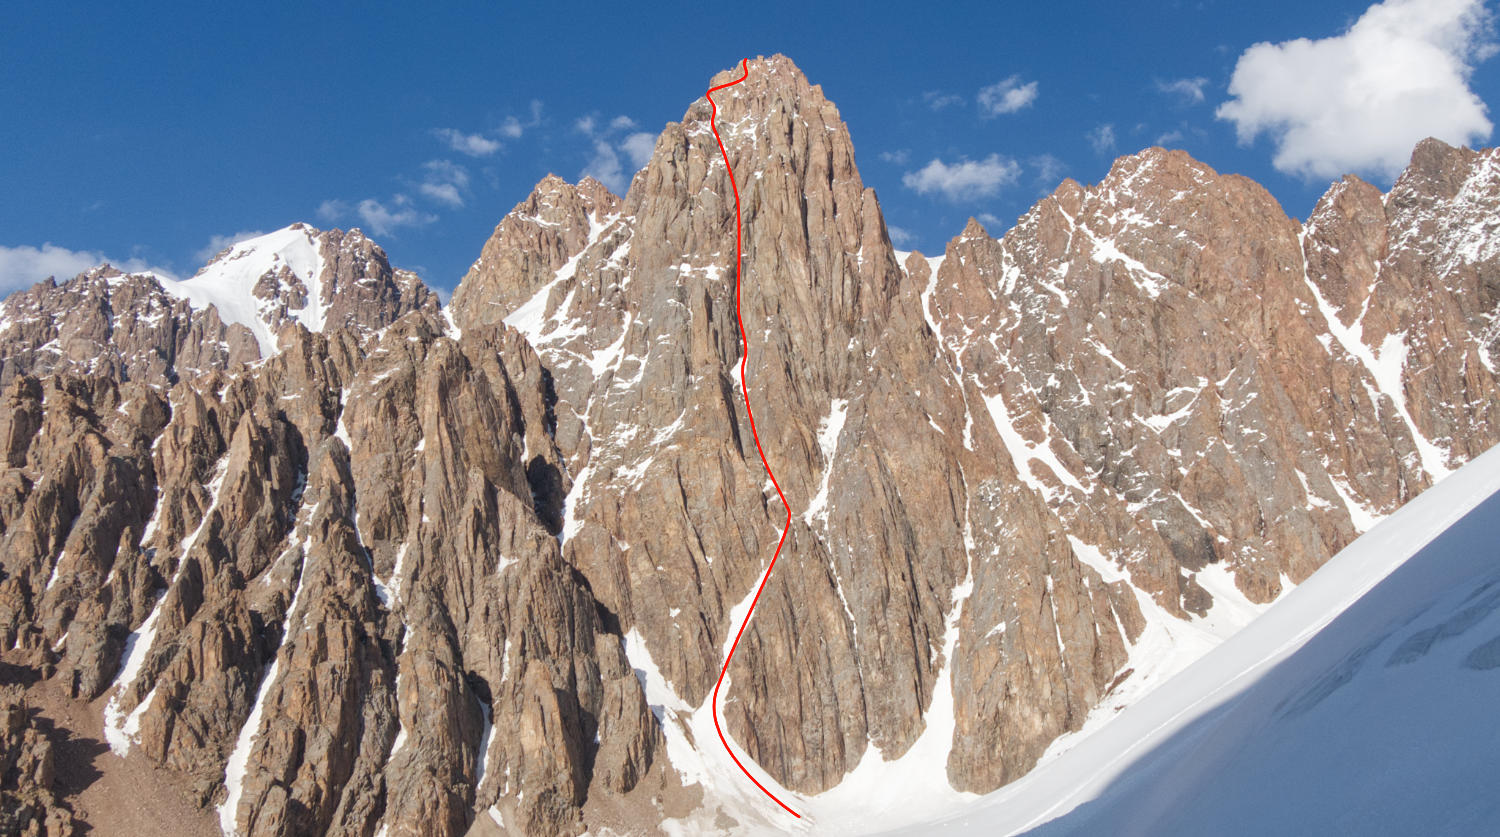 The line of our route on peak Trud